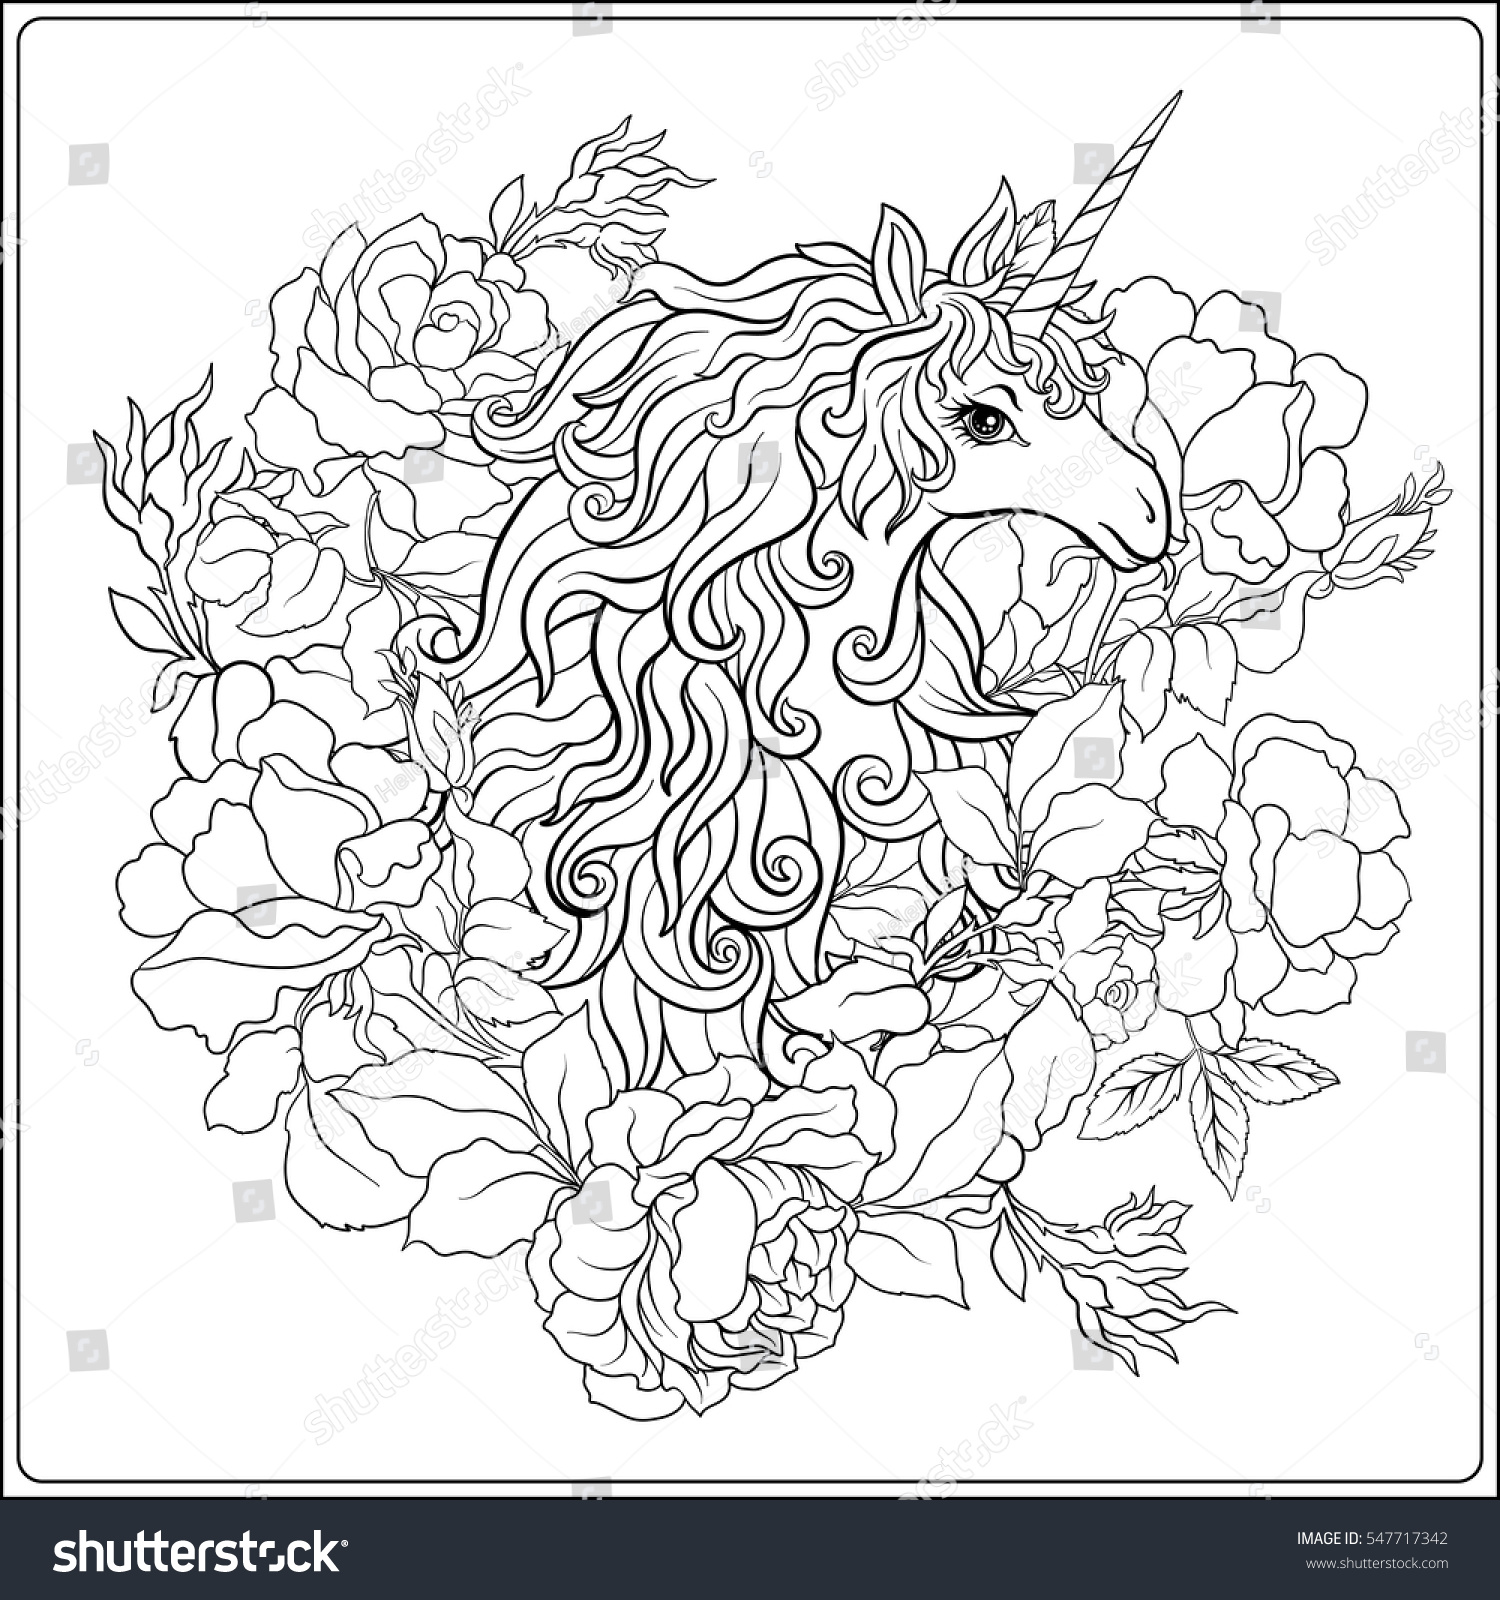 Coloring Pages For Adults Unicorns - Unicorn the composition consists of a unicorn surrounded by a bouquet of roses outline